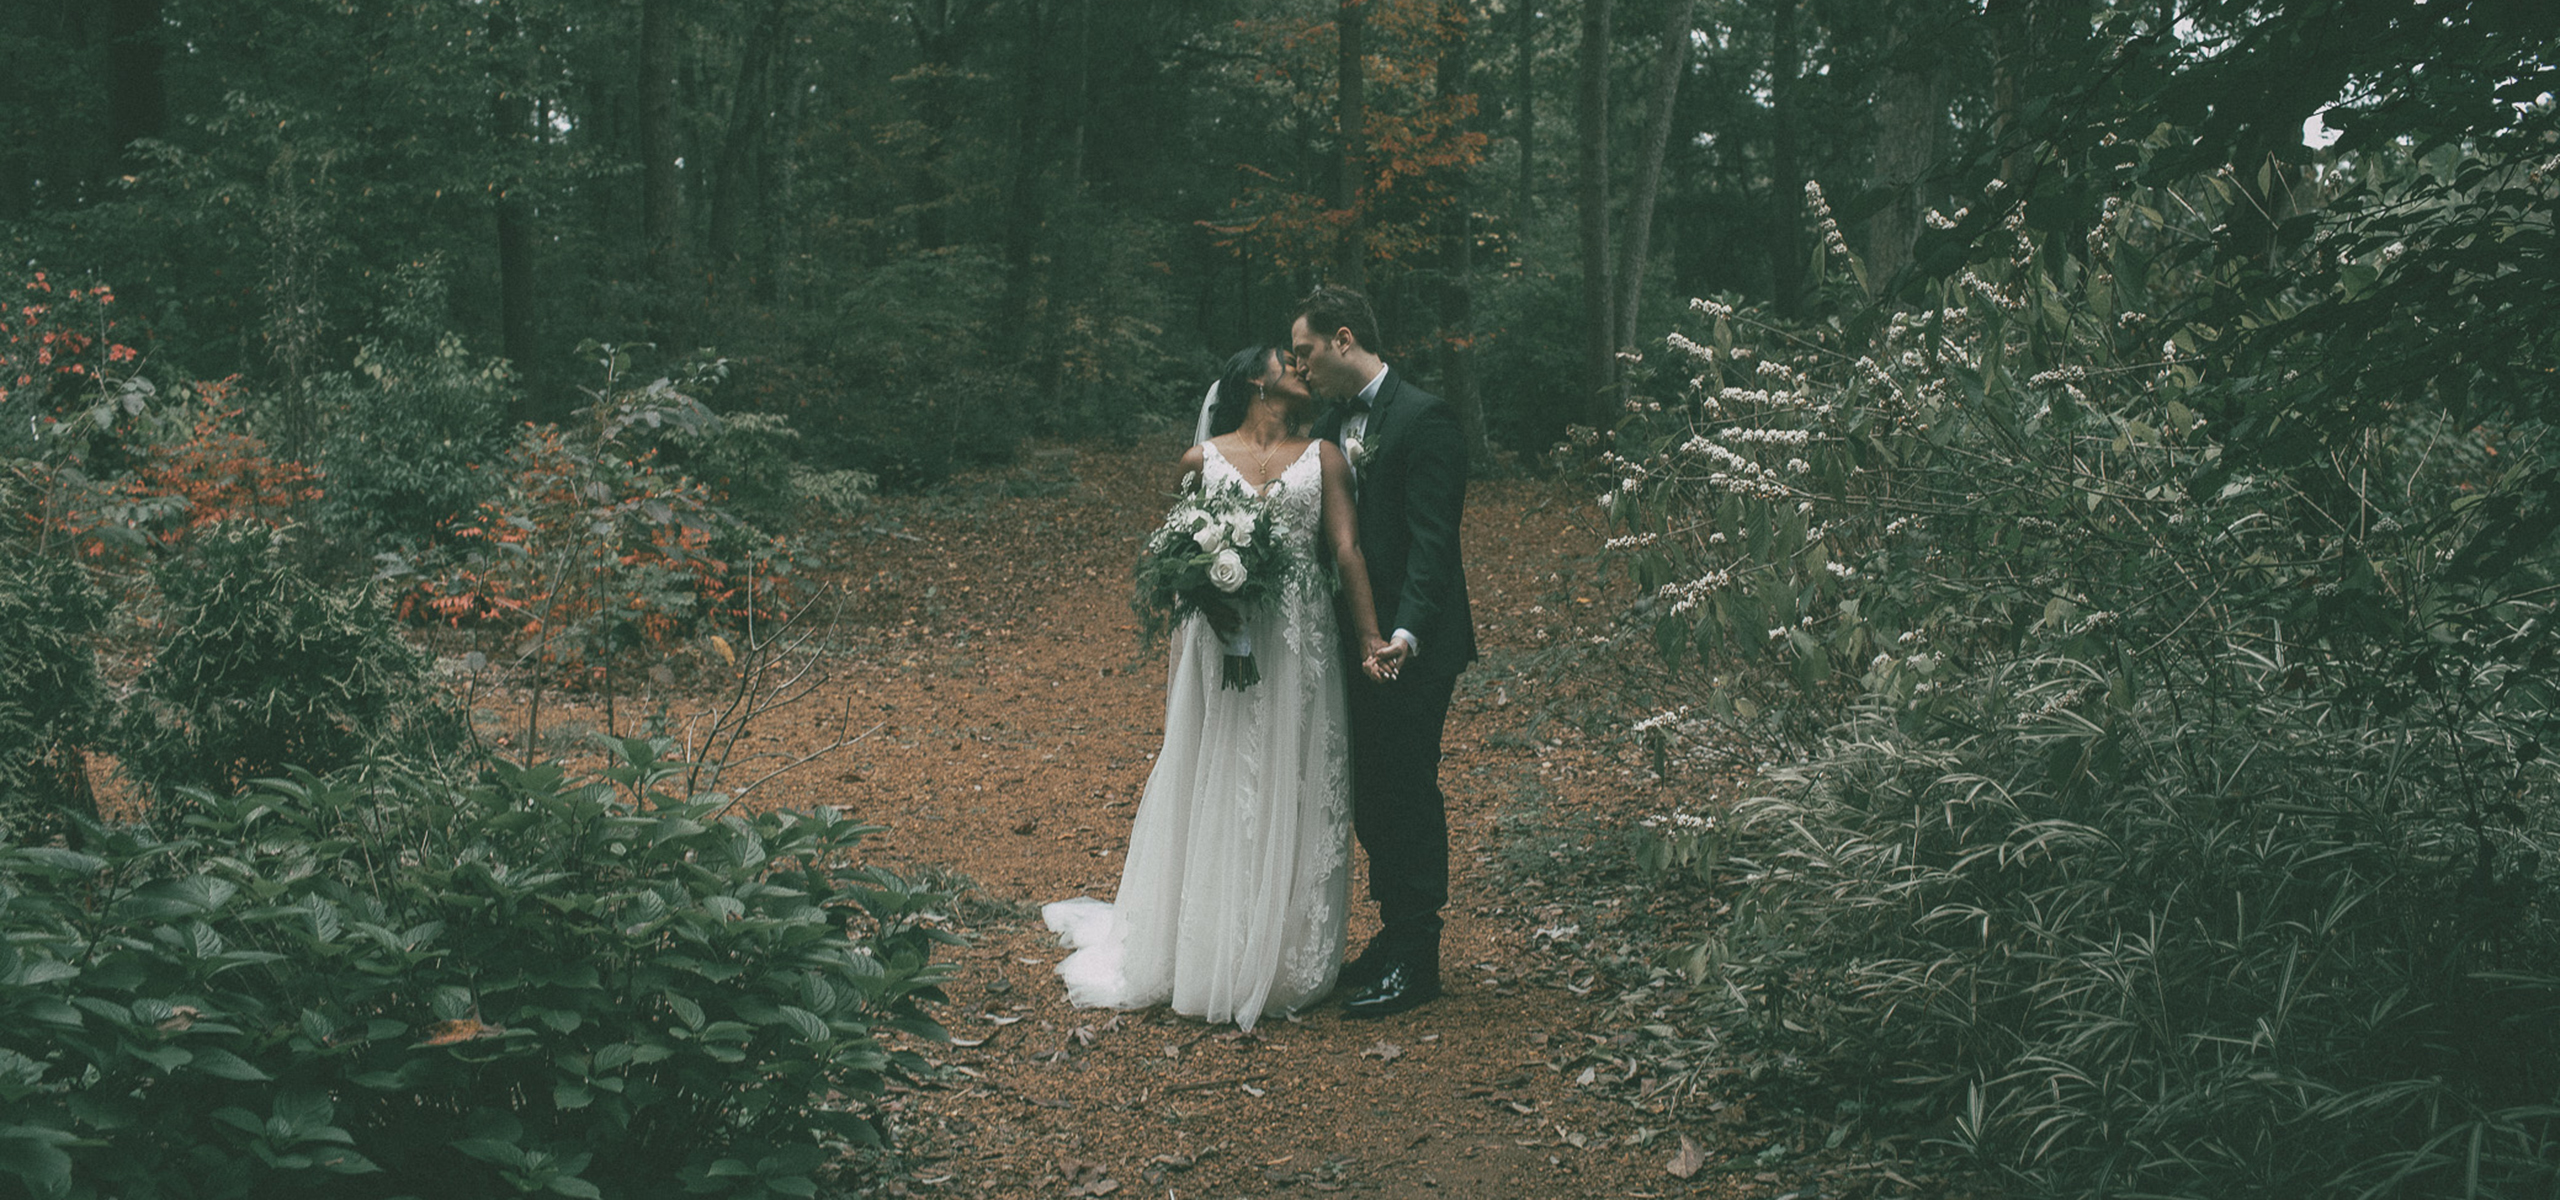 Manchester New Hampshire Wedding Photography + Elopement Photography